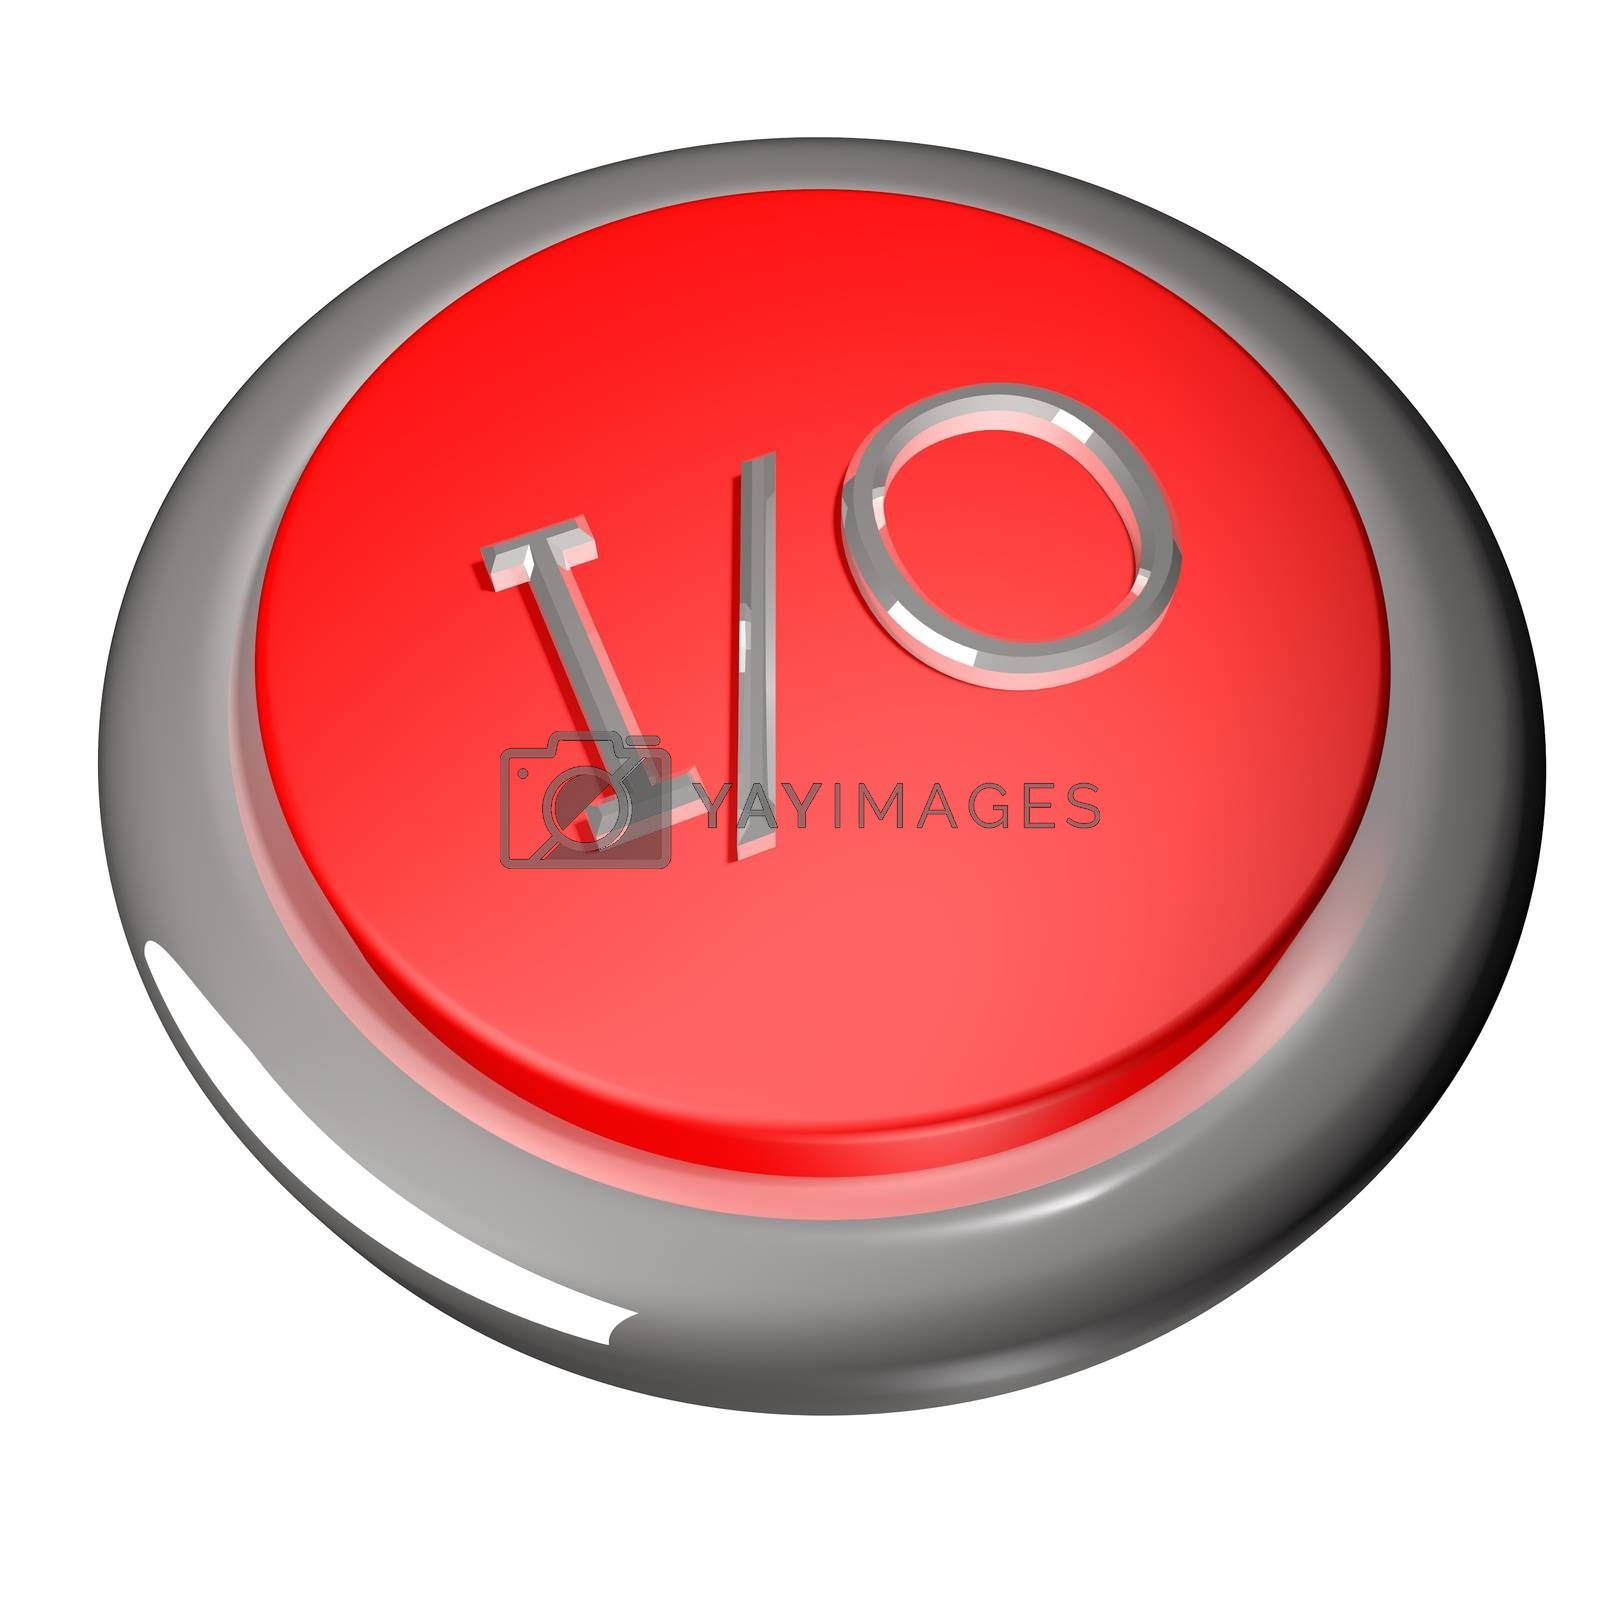 I/O symbol over button, 3d render